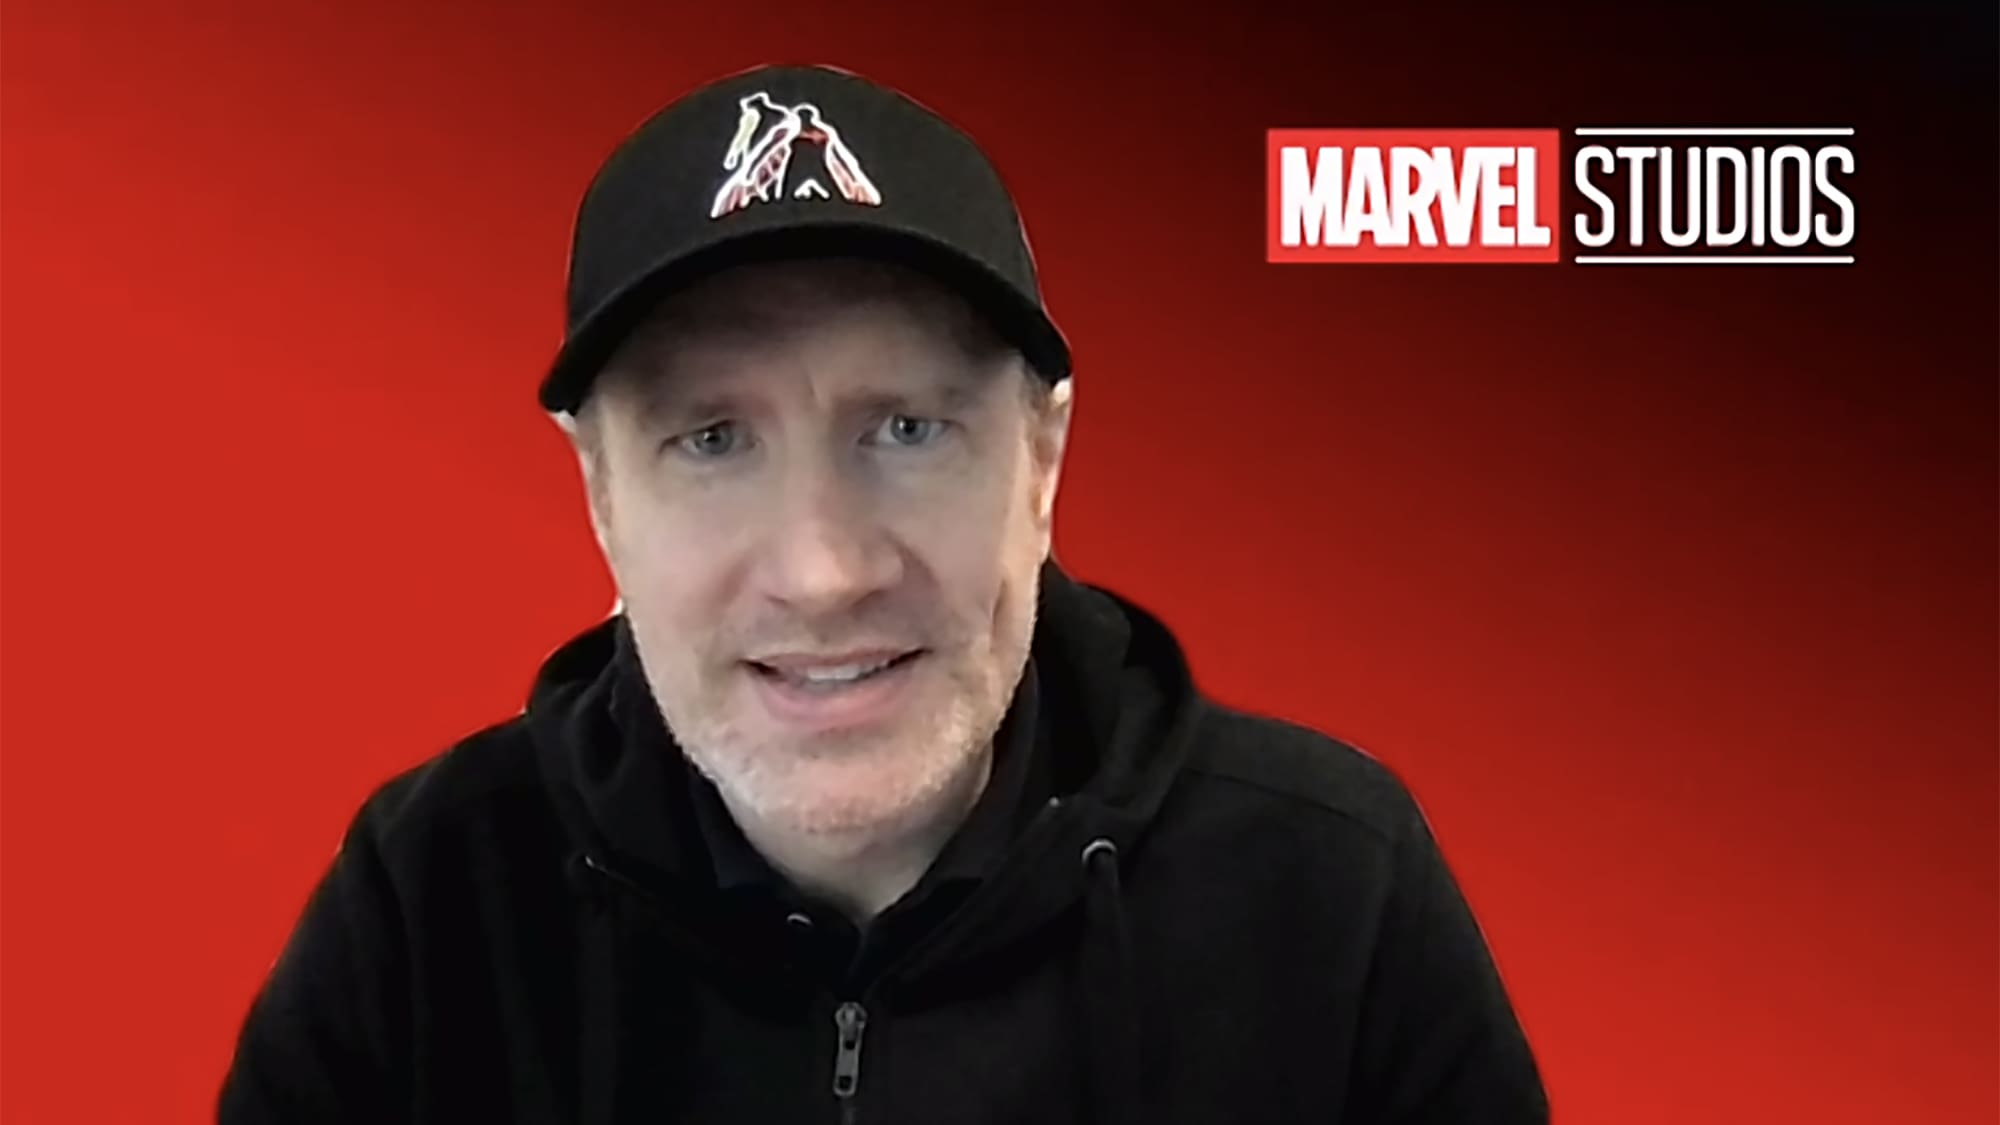 Disney+ Winter TCA Press Tour - The Marvel Cinematic Universe on Disney+: A Conversation with Kevin Feige